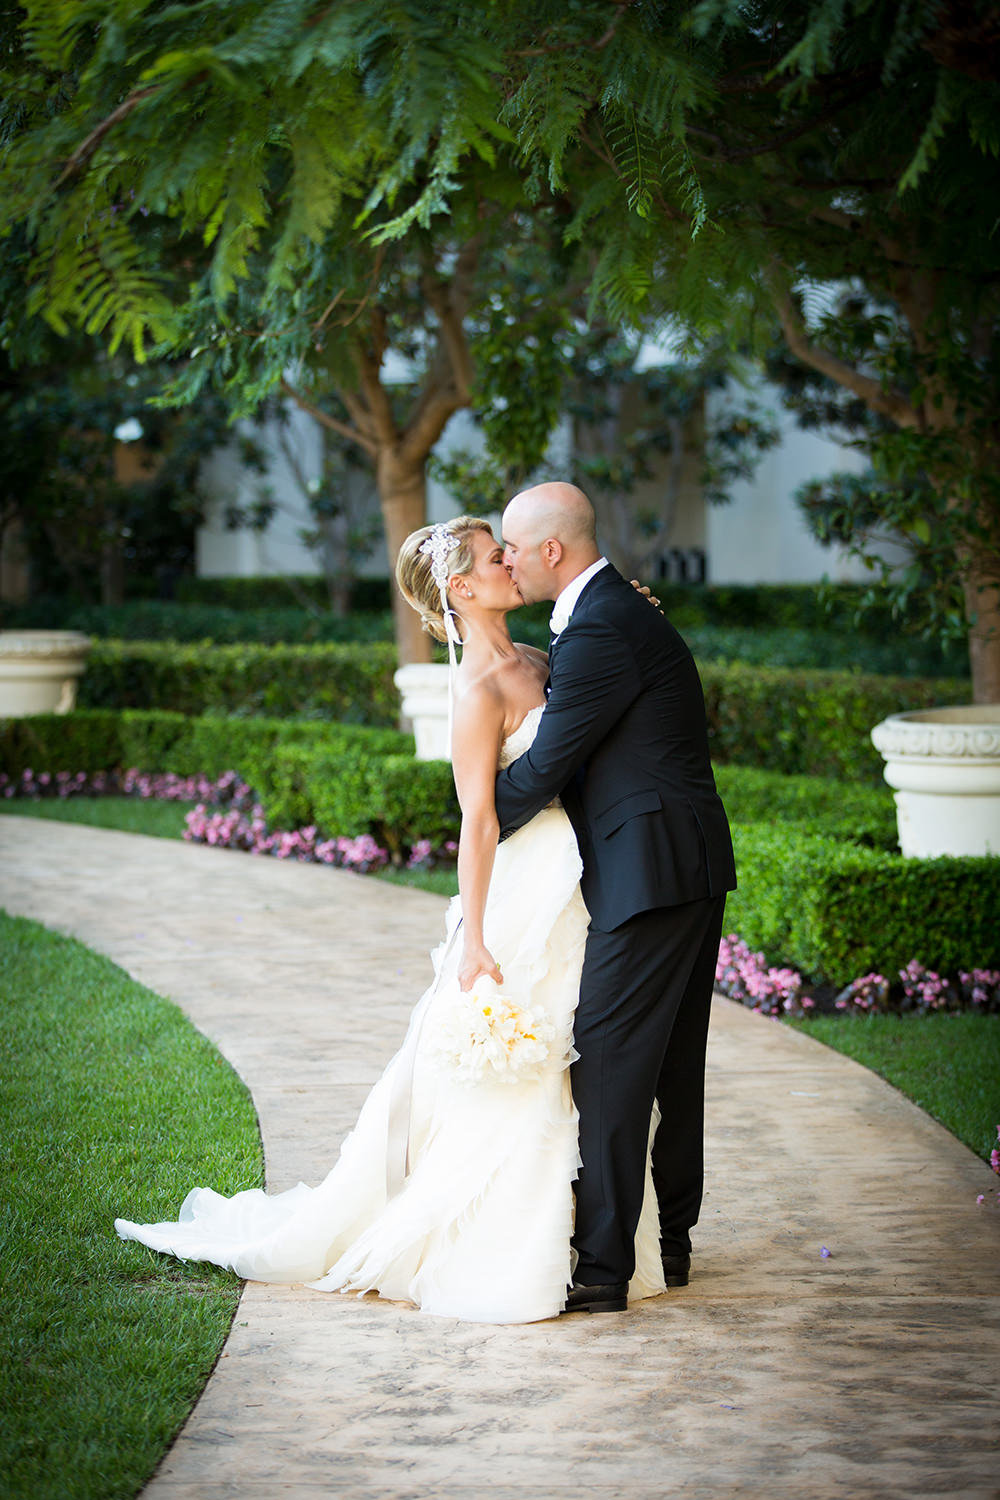 Romantic kiss on the walkway at St. Regis Monarch Beach Resort